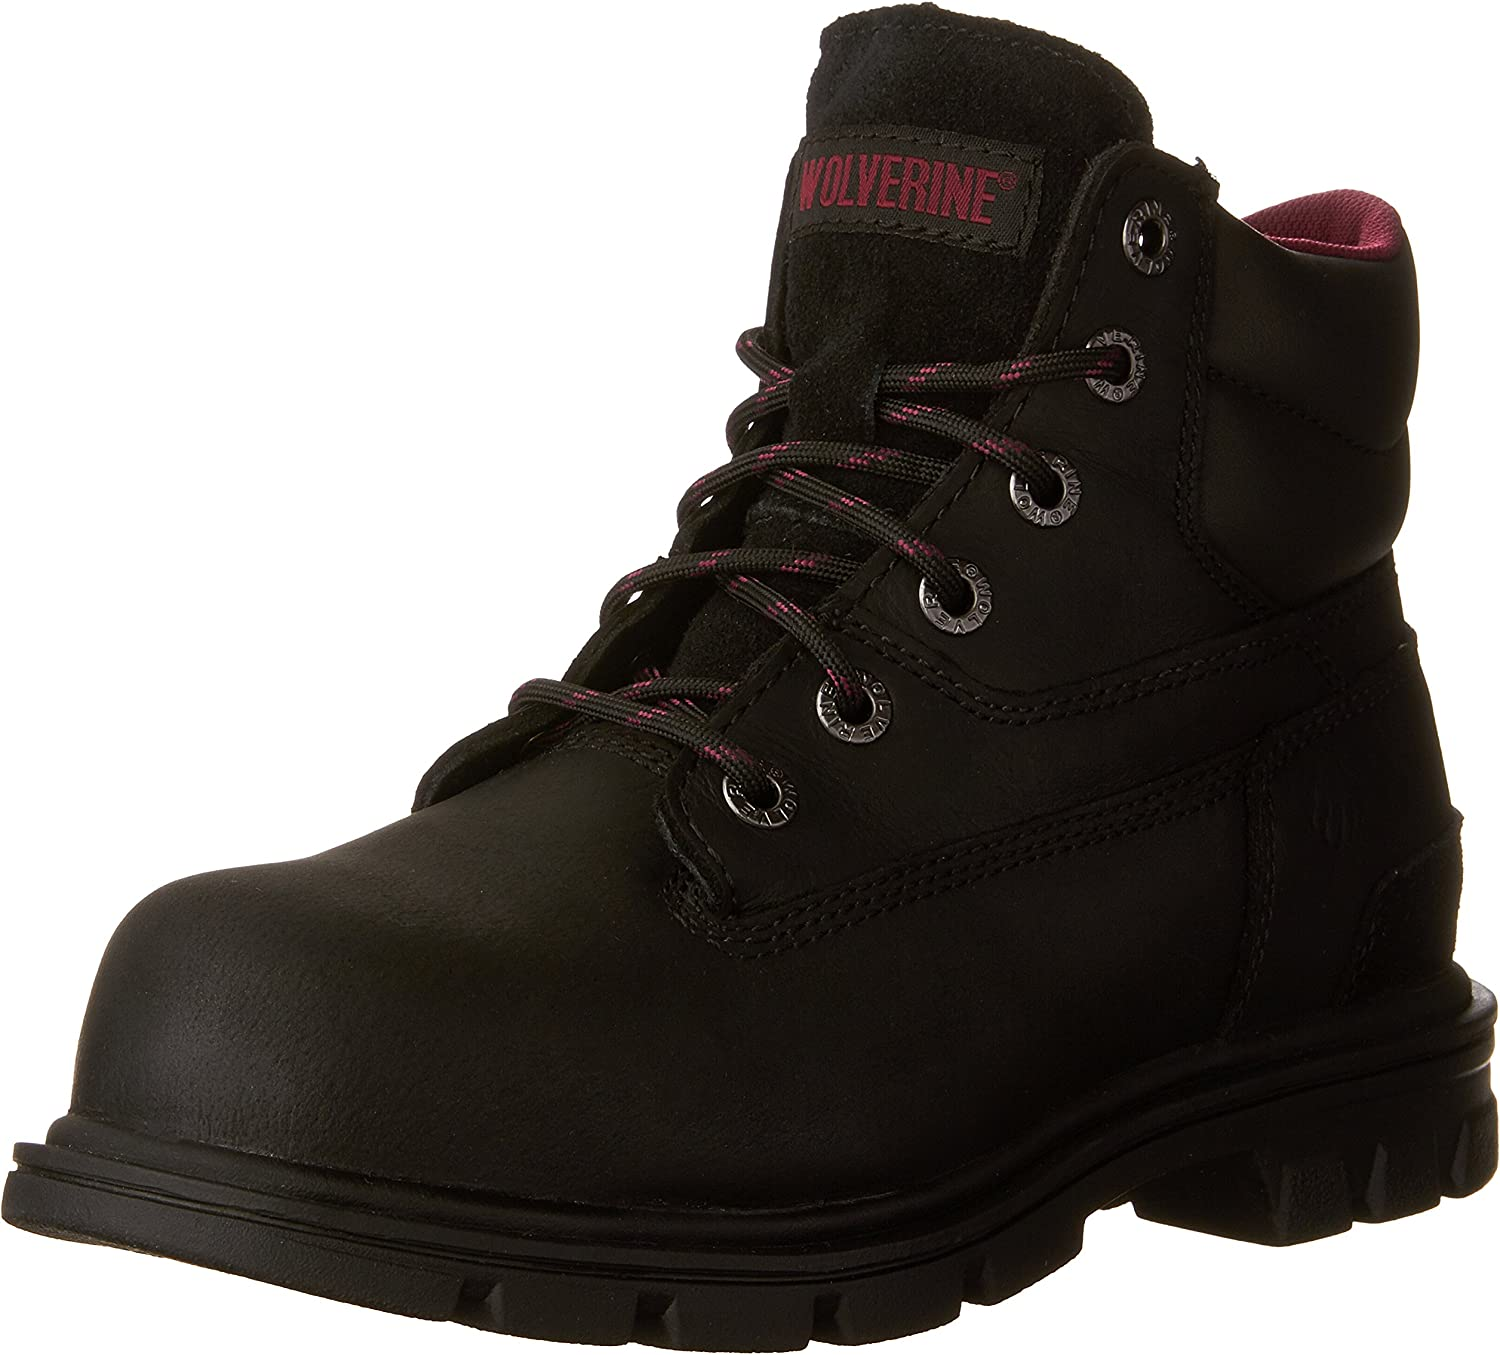 Wolverine Women's Belle CSA Safety Boot